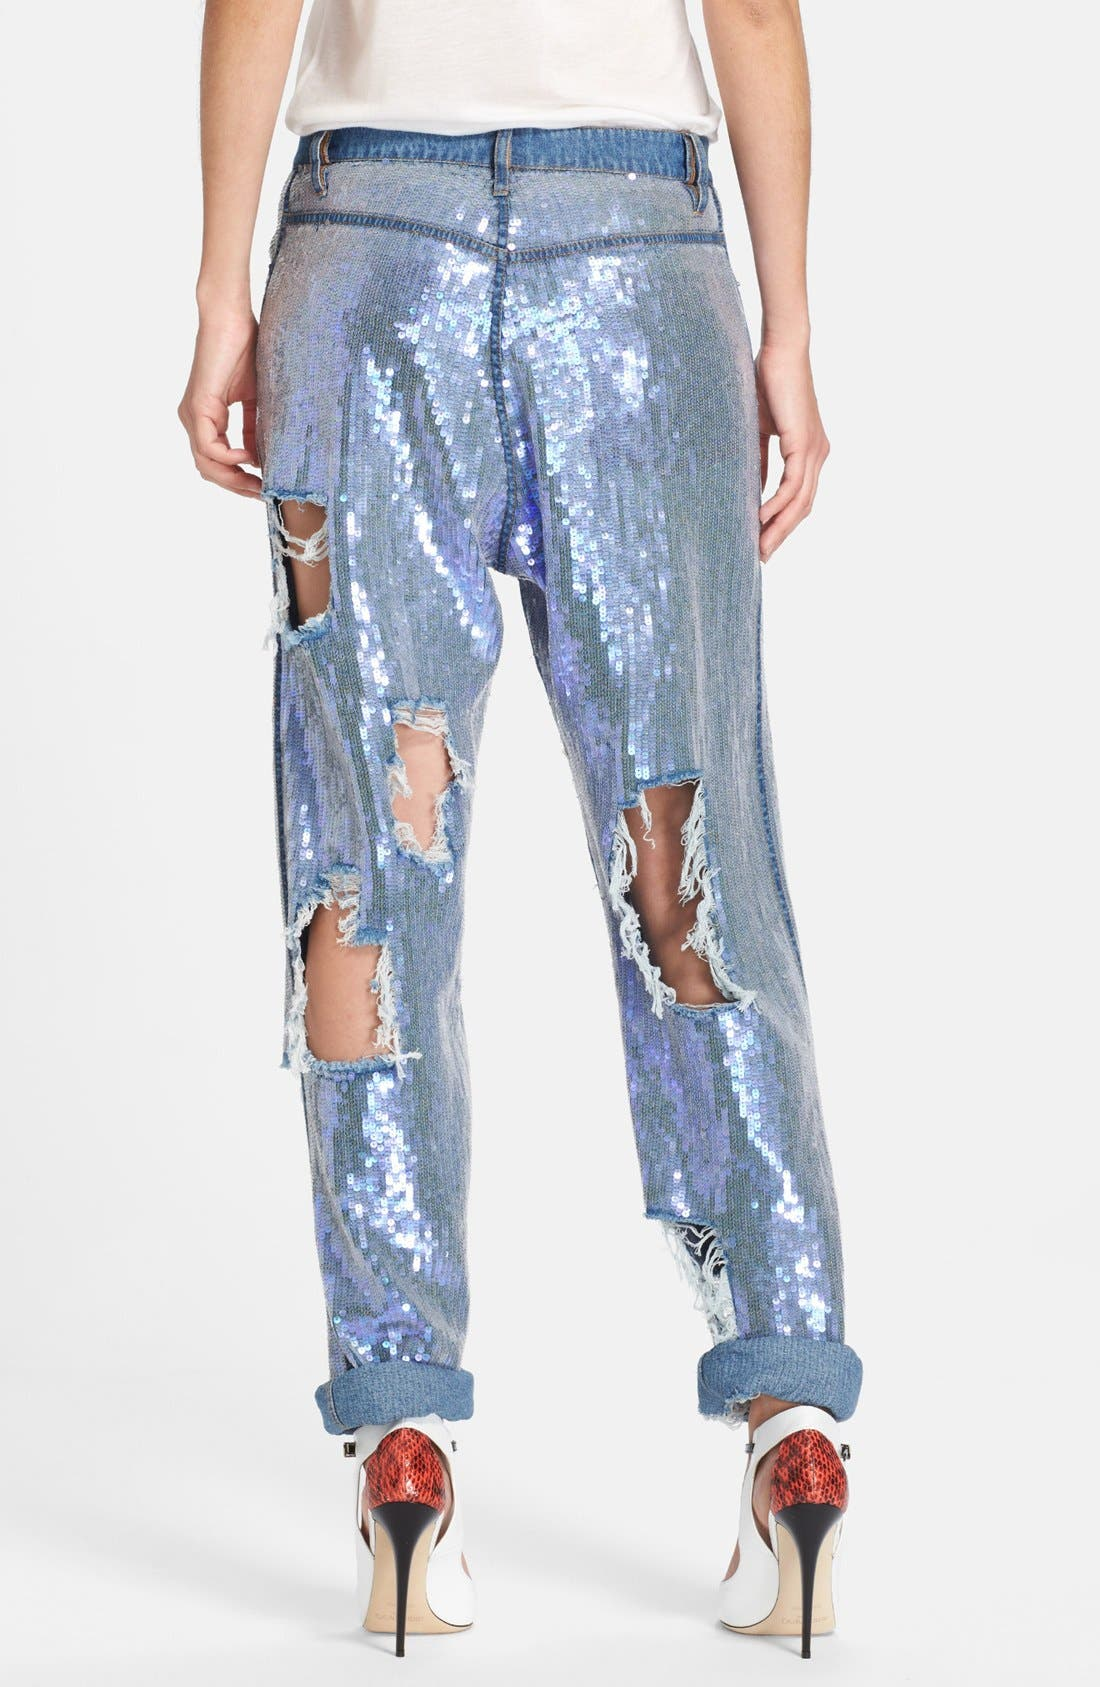 ASHISH,                             Destroyed Sequin Jeans,                             Alternate thumbnail 3, color,                             400